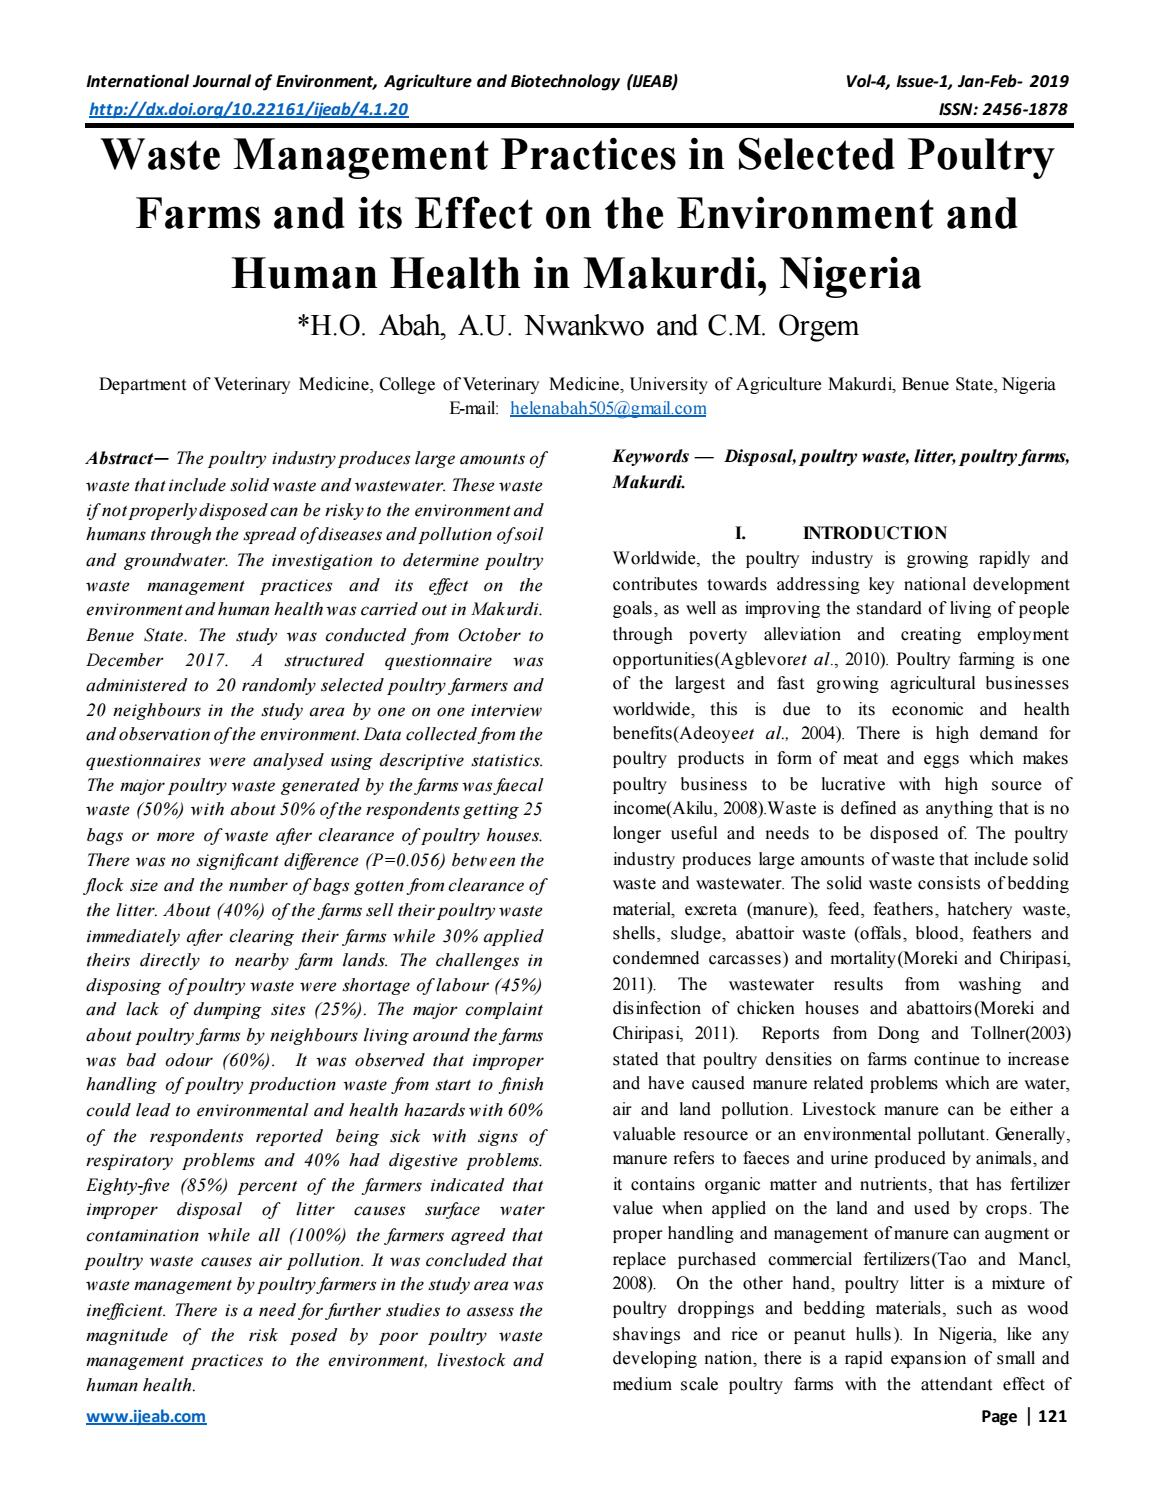 Waste Management Practices in Selected Poultry Farms and its